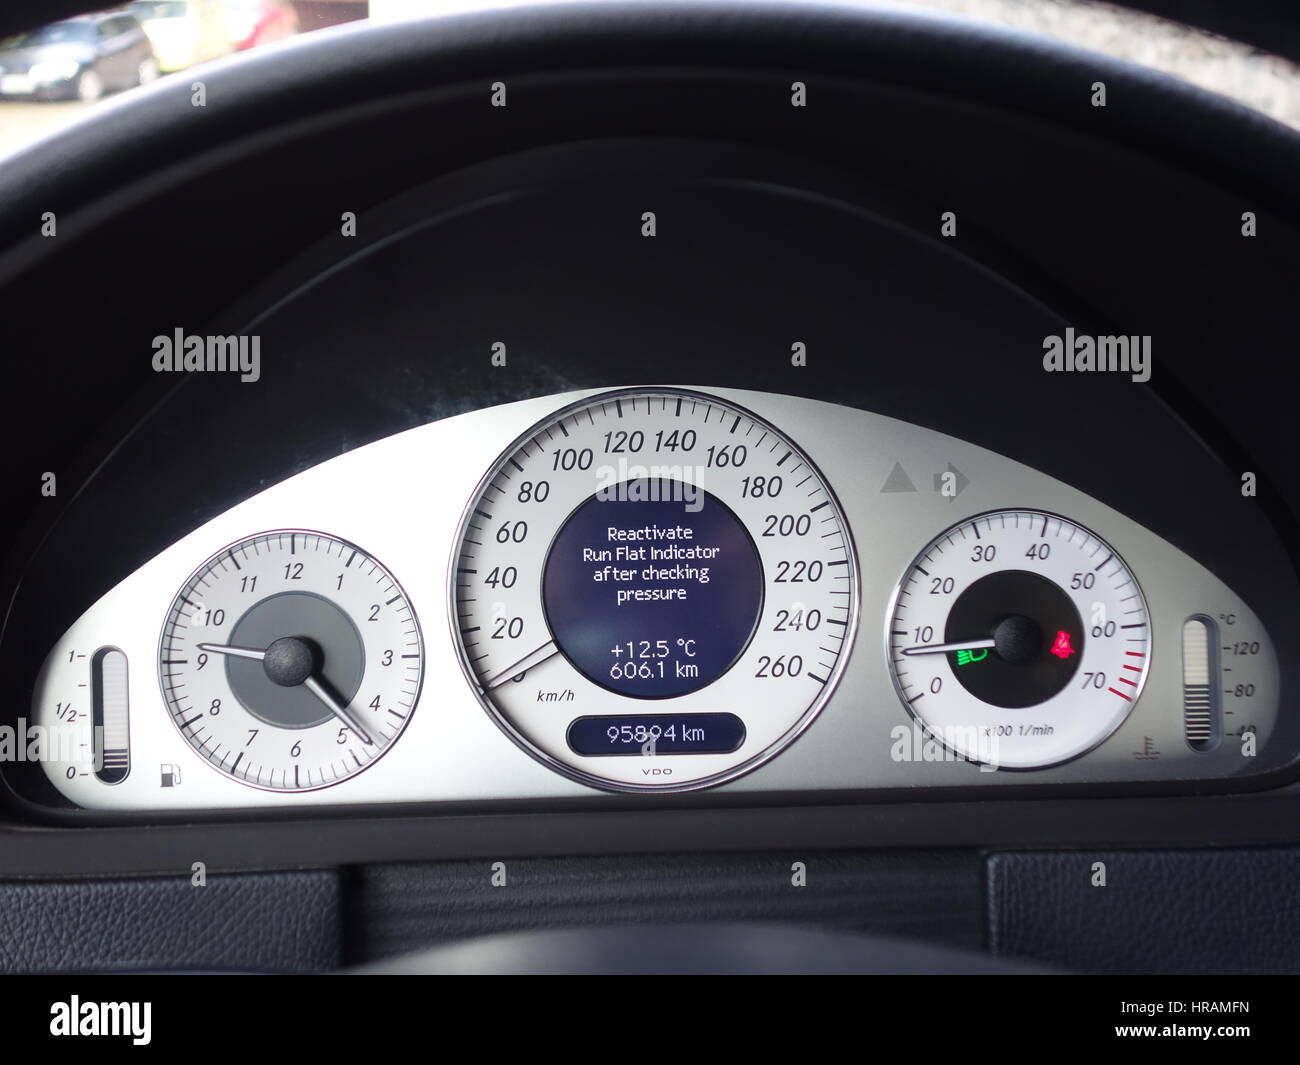 Climatisation Design View Of Central Panel Dashboard Unit With Audio Controls And Stock